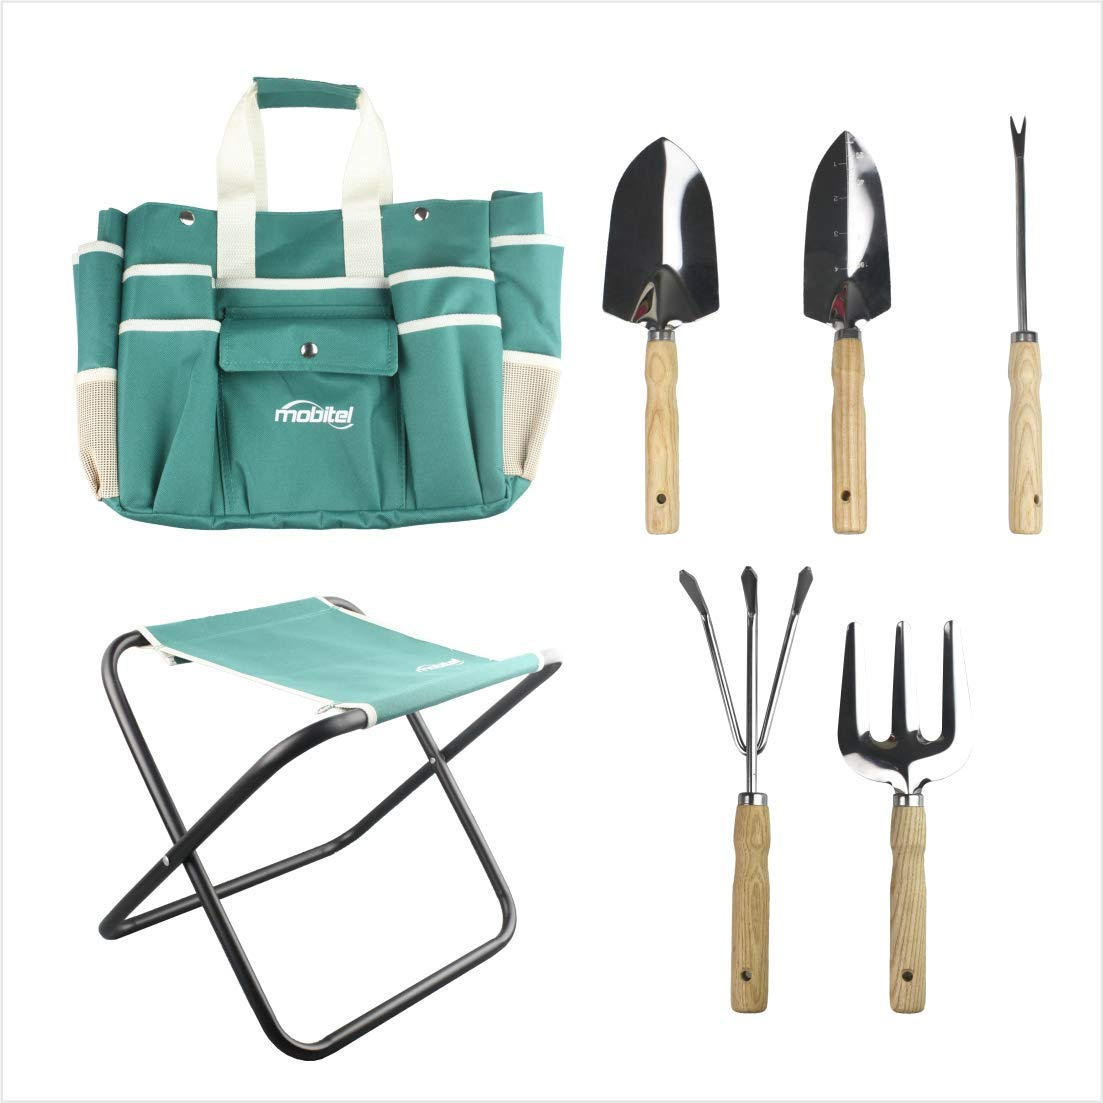 haoyin 7 Piece Garden Tool Set Including Folding Stool with Tool Bag, All in ONE Gardening Tool Kit Gifts for Women & Men.Making Gardening just More Relaxing (Toothpaste)